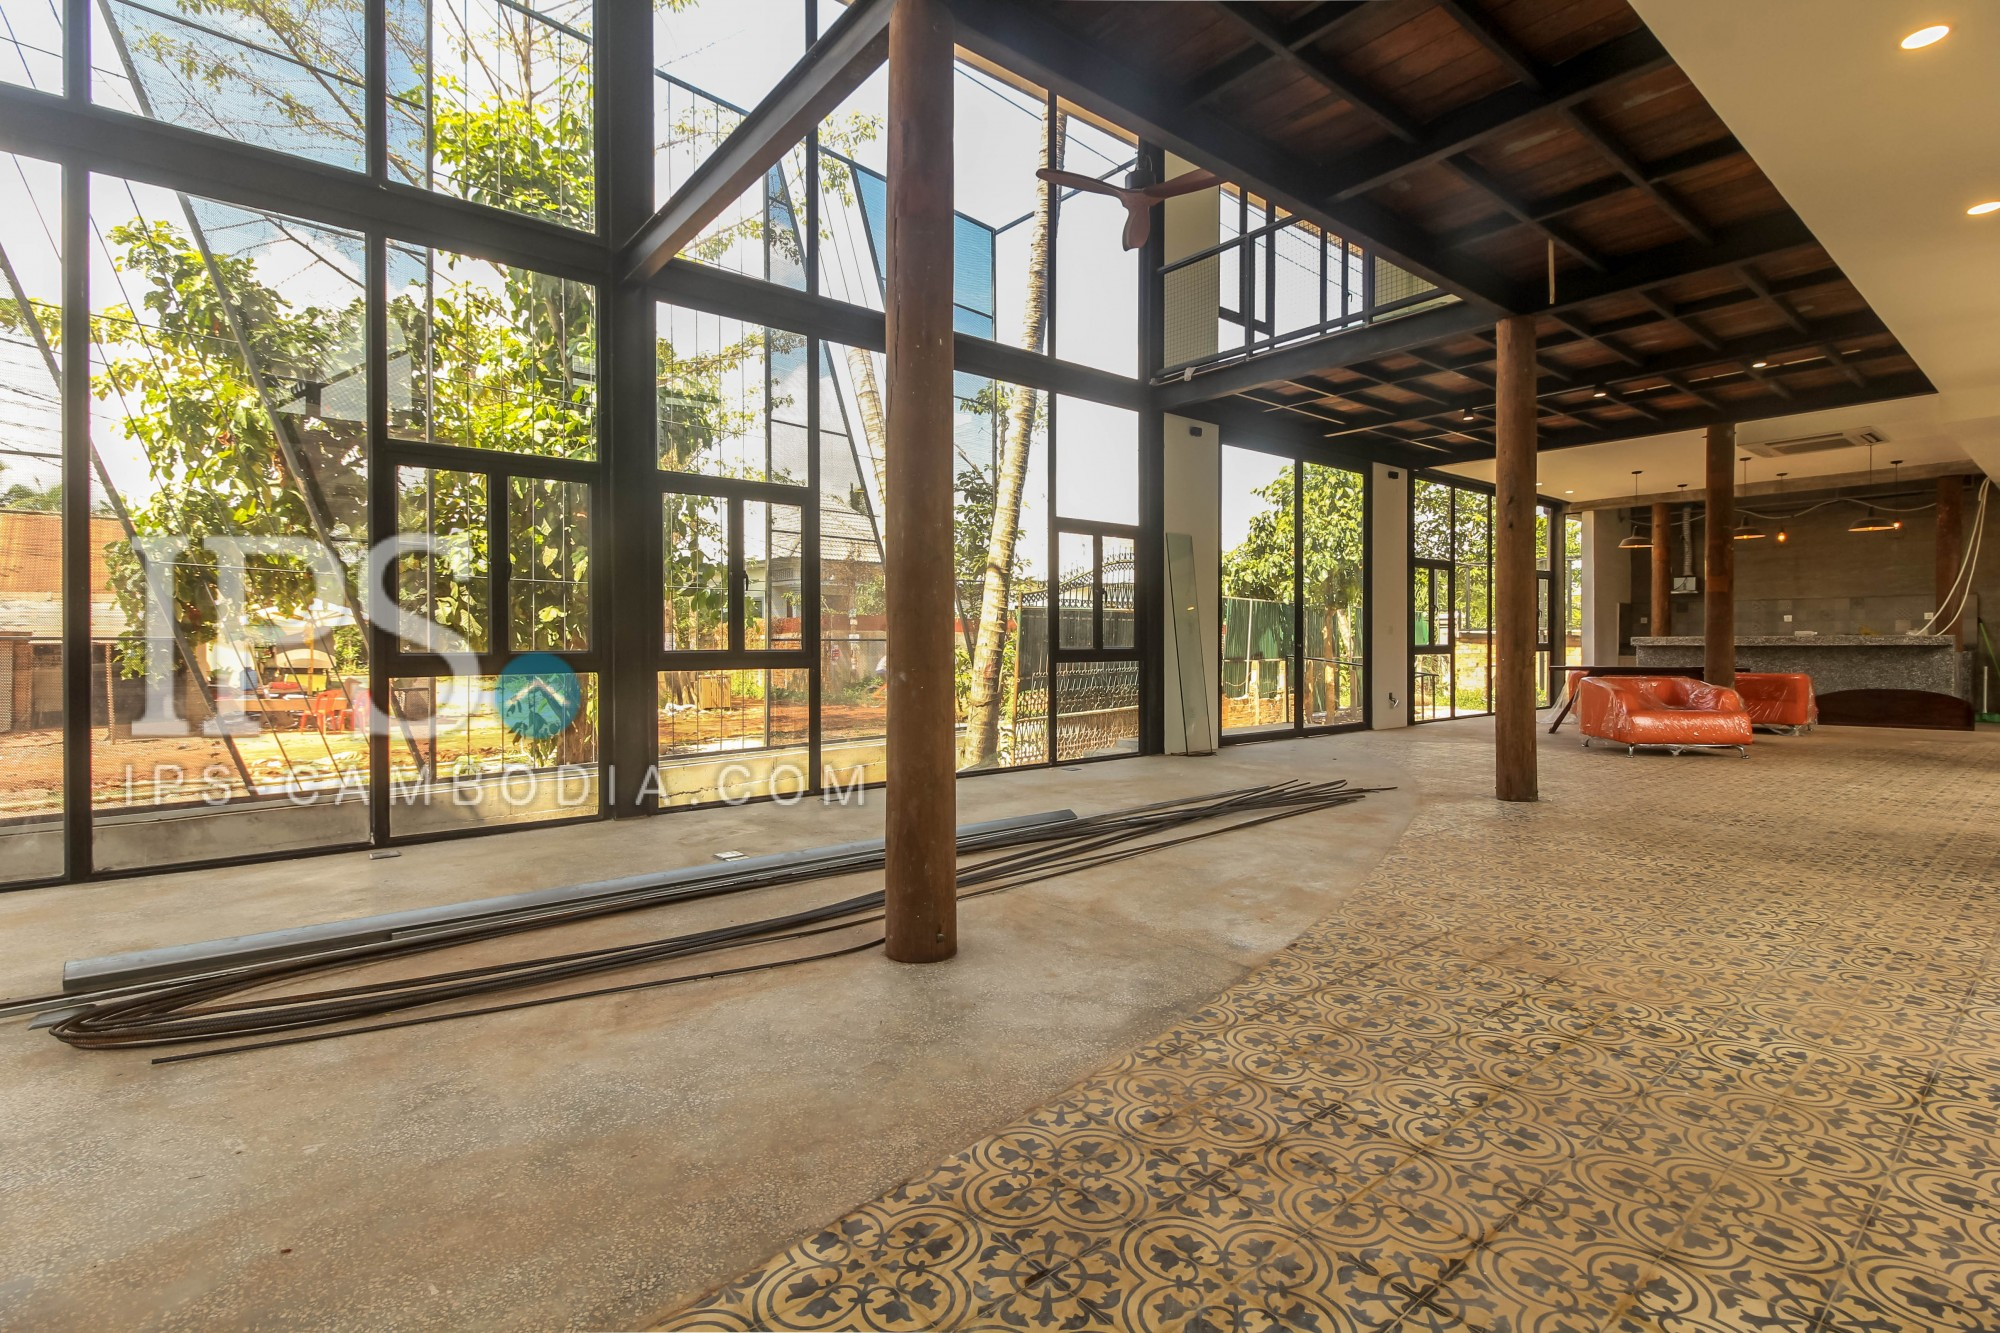 3 Bedroom And Commercial Space For Rent - Sala Komreuk, Siem Reap